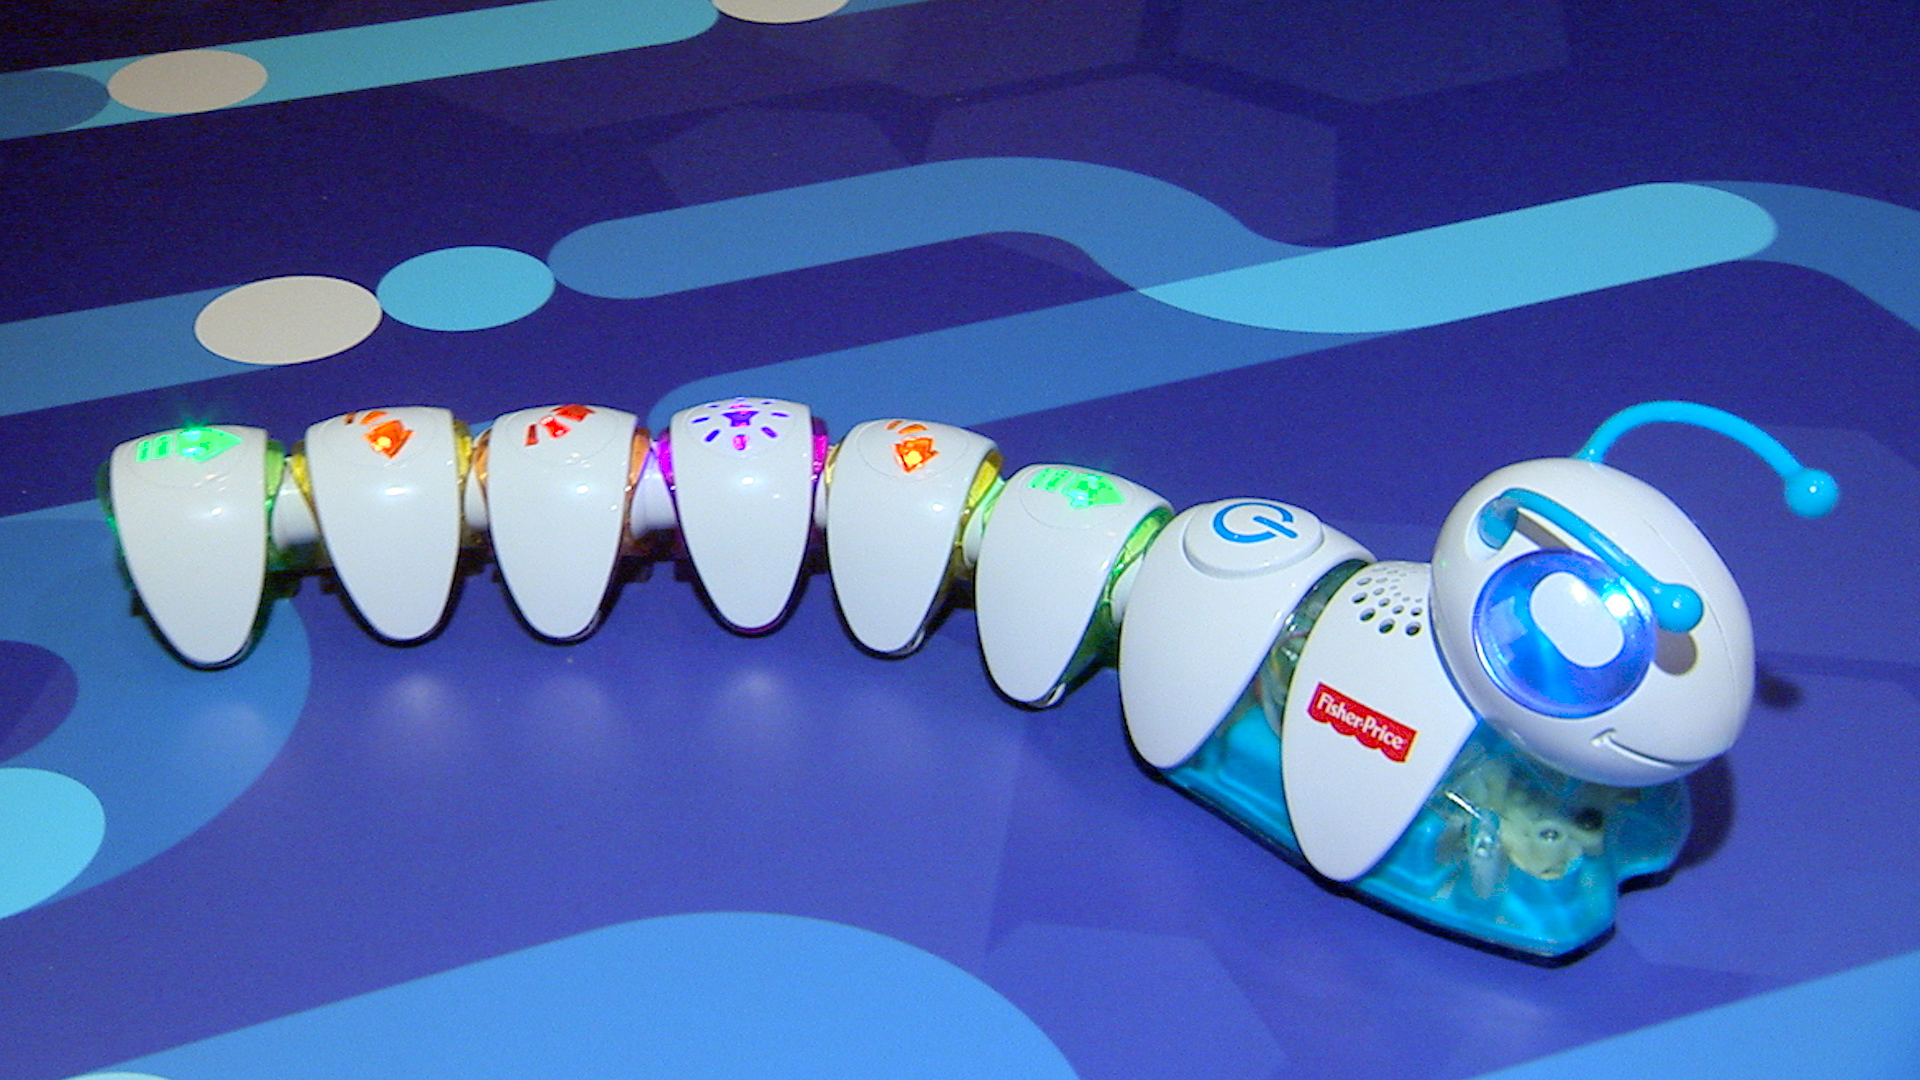 Video: Fisher Price Code-a-Pillar lets you plug and program a little robot friend